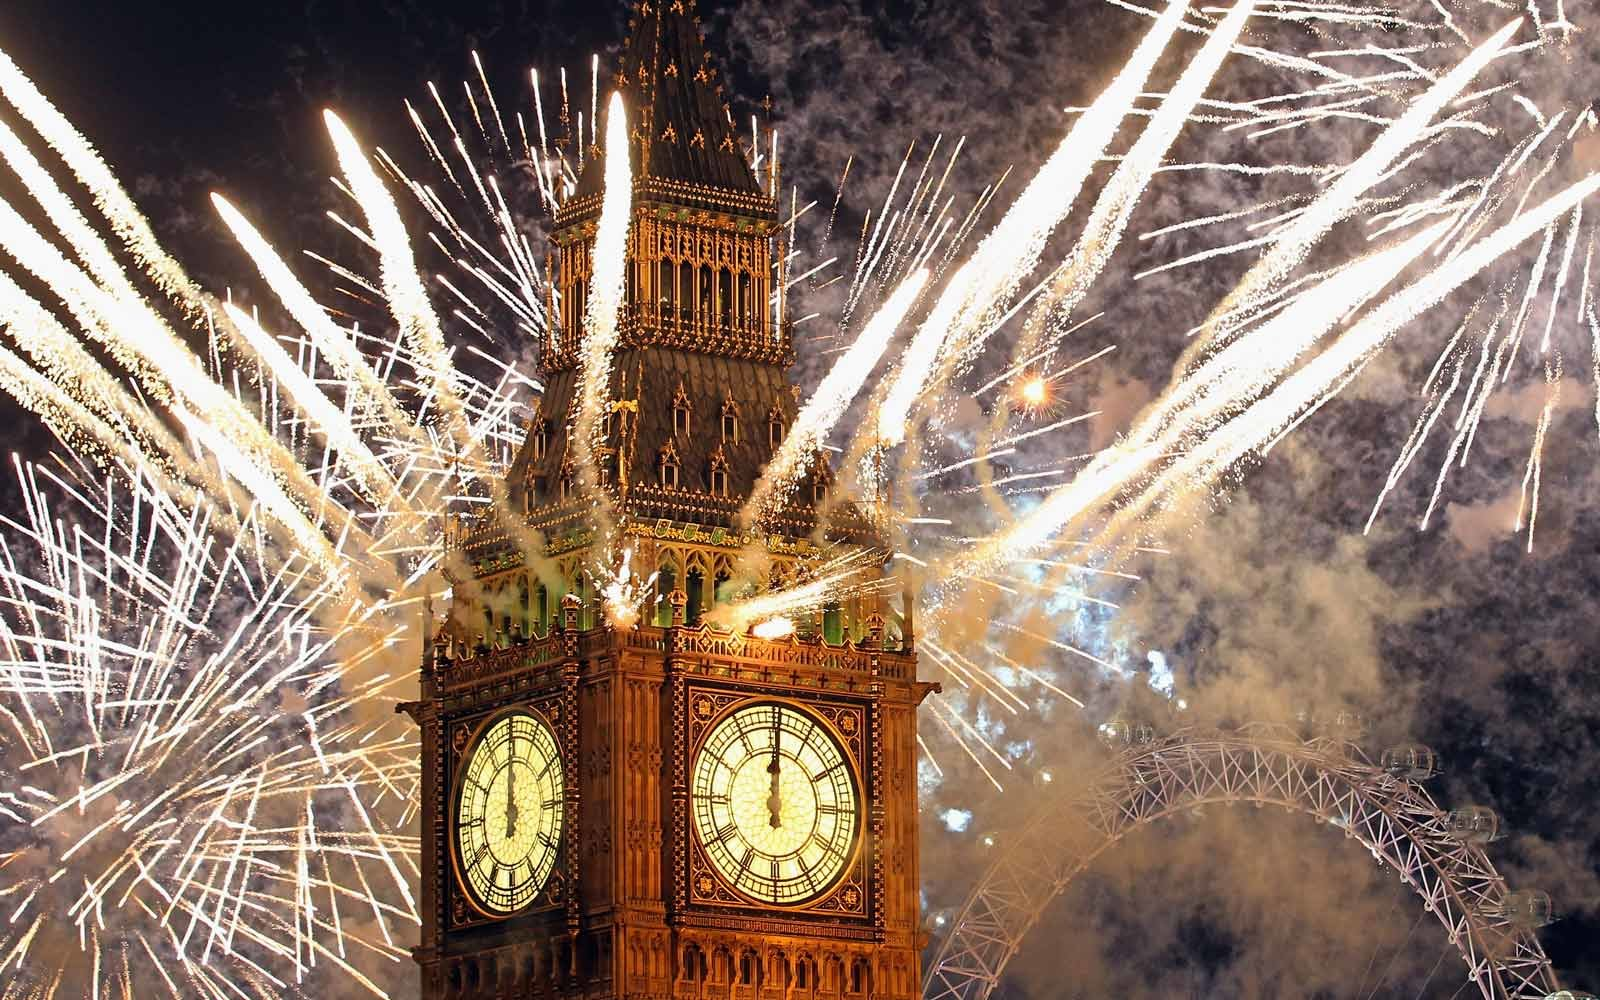 Fireworks light up the London skyline and Big Ben just after midnight on New Year's Eve in London, England